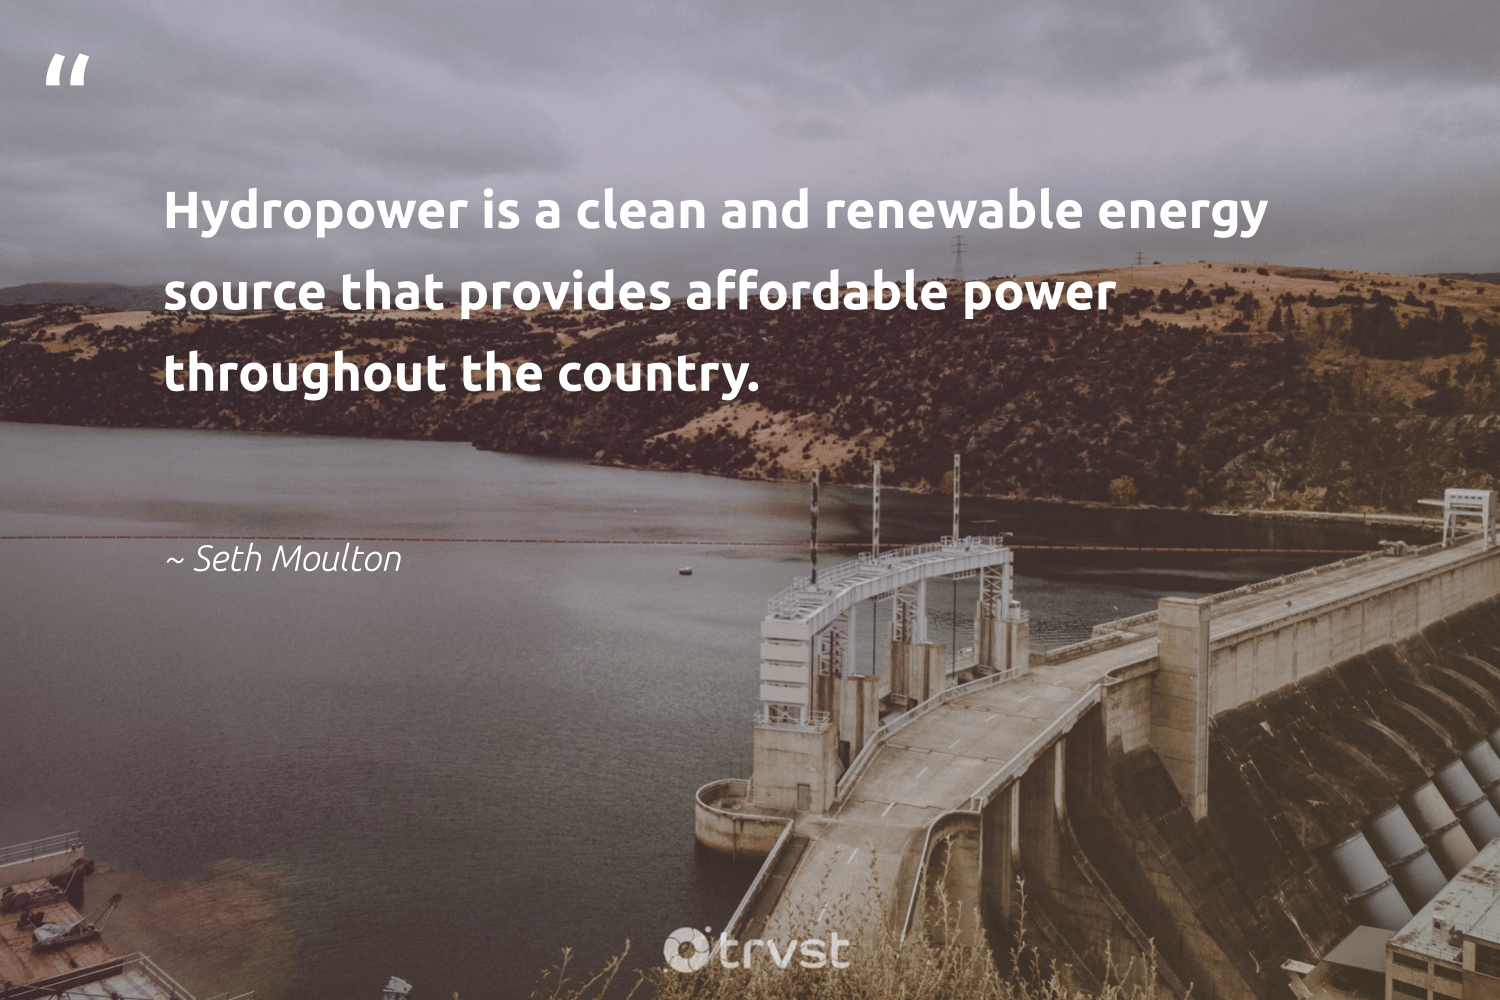 """""""Hydropower is a clean and renewable energy source that provides affordable power throughout the country.""""  - Seth Moulton #trvst #quotes #renewableenergy #energy #renewable #affordable #renewables #100percentclean #environment #climatechange #changetheworld #switchfuelenergy"""